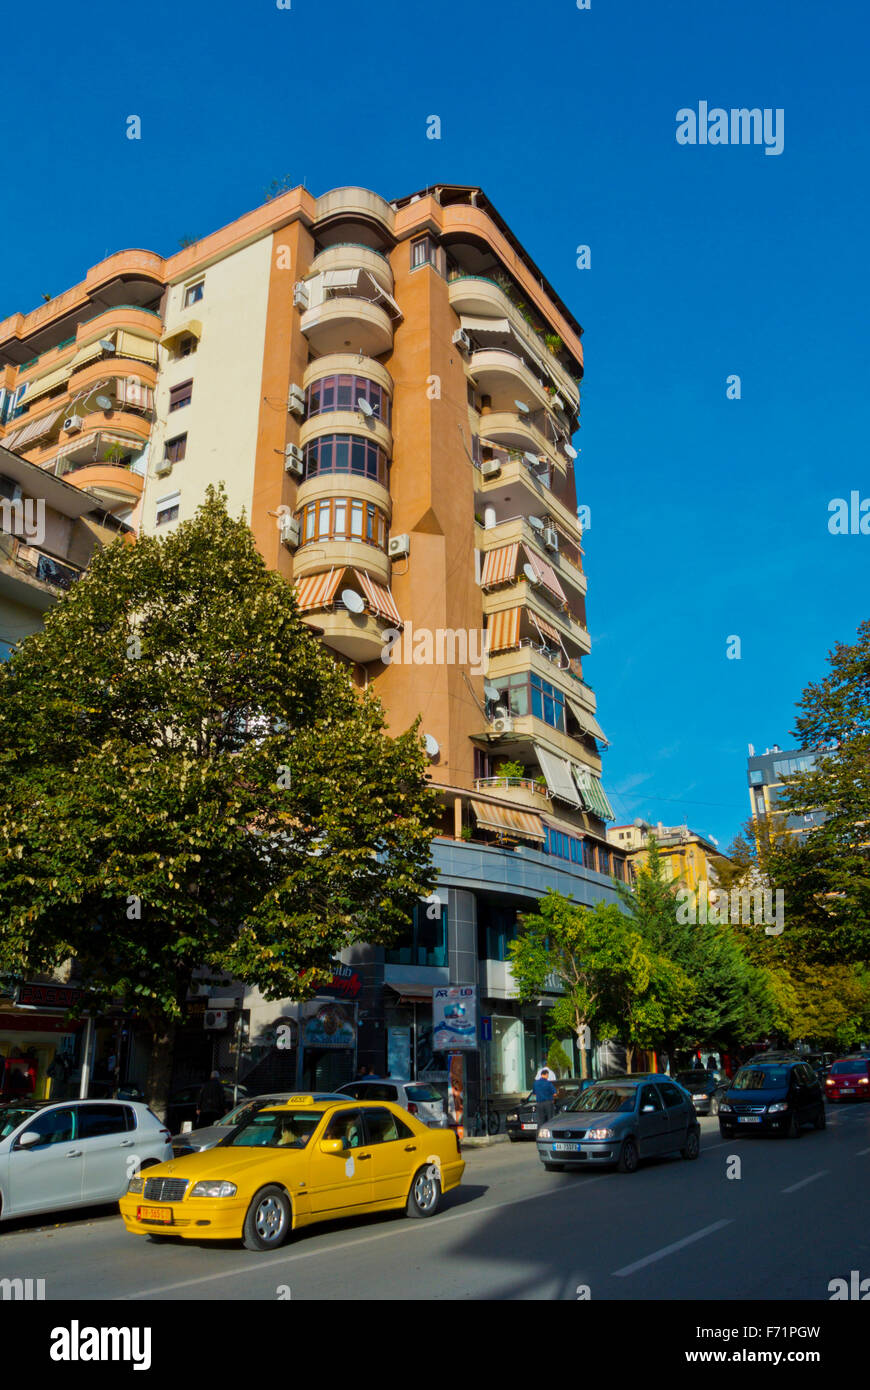 Rruga Abdyl Frasheri street, Blloku district, Tirana, Albania Stock Photo